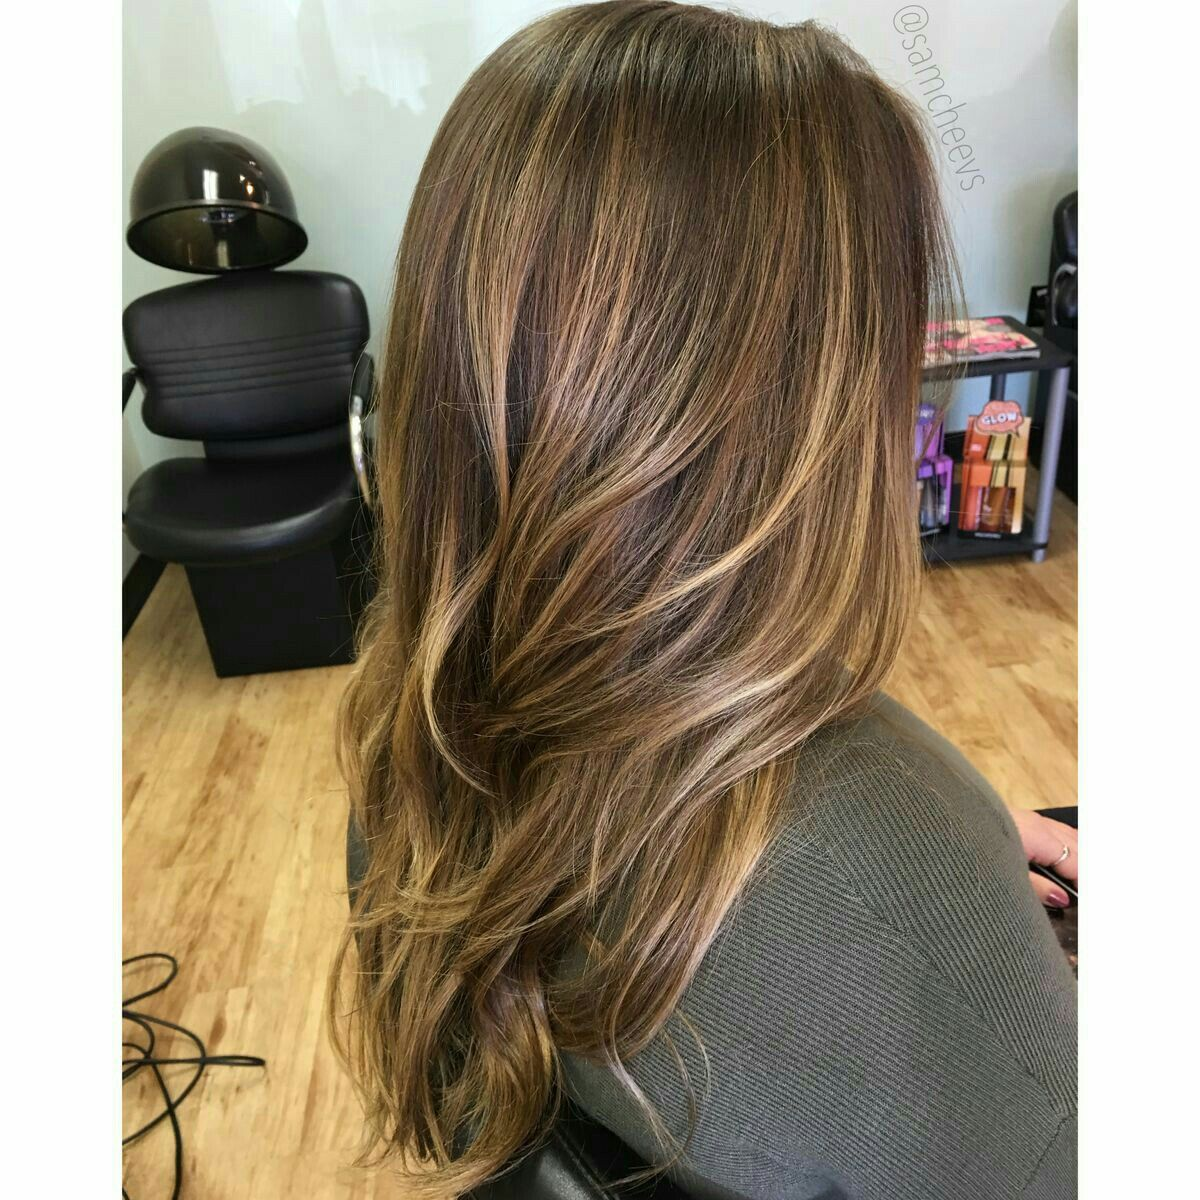 Balayage for brown hair hairstyle ideas pinterest caramel highlights for dark hair balayage for brown hair types brunette hair styles pmusecretfo Images